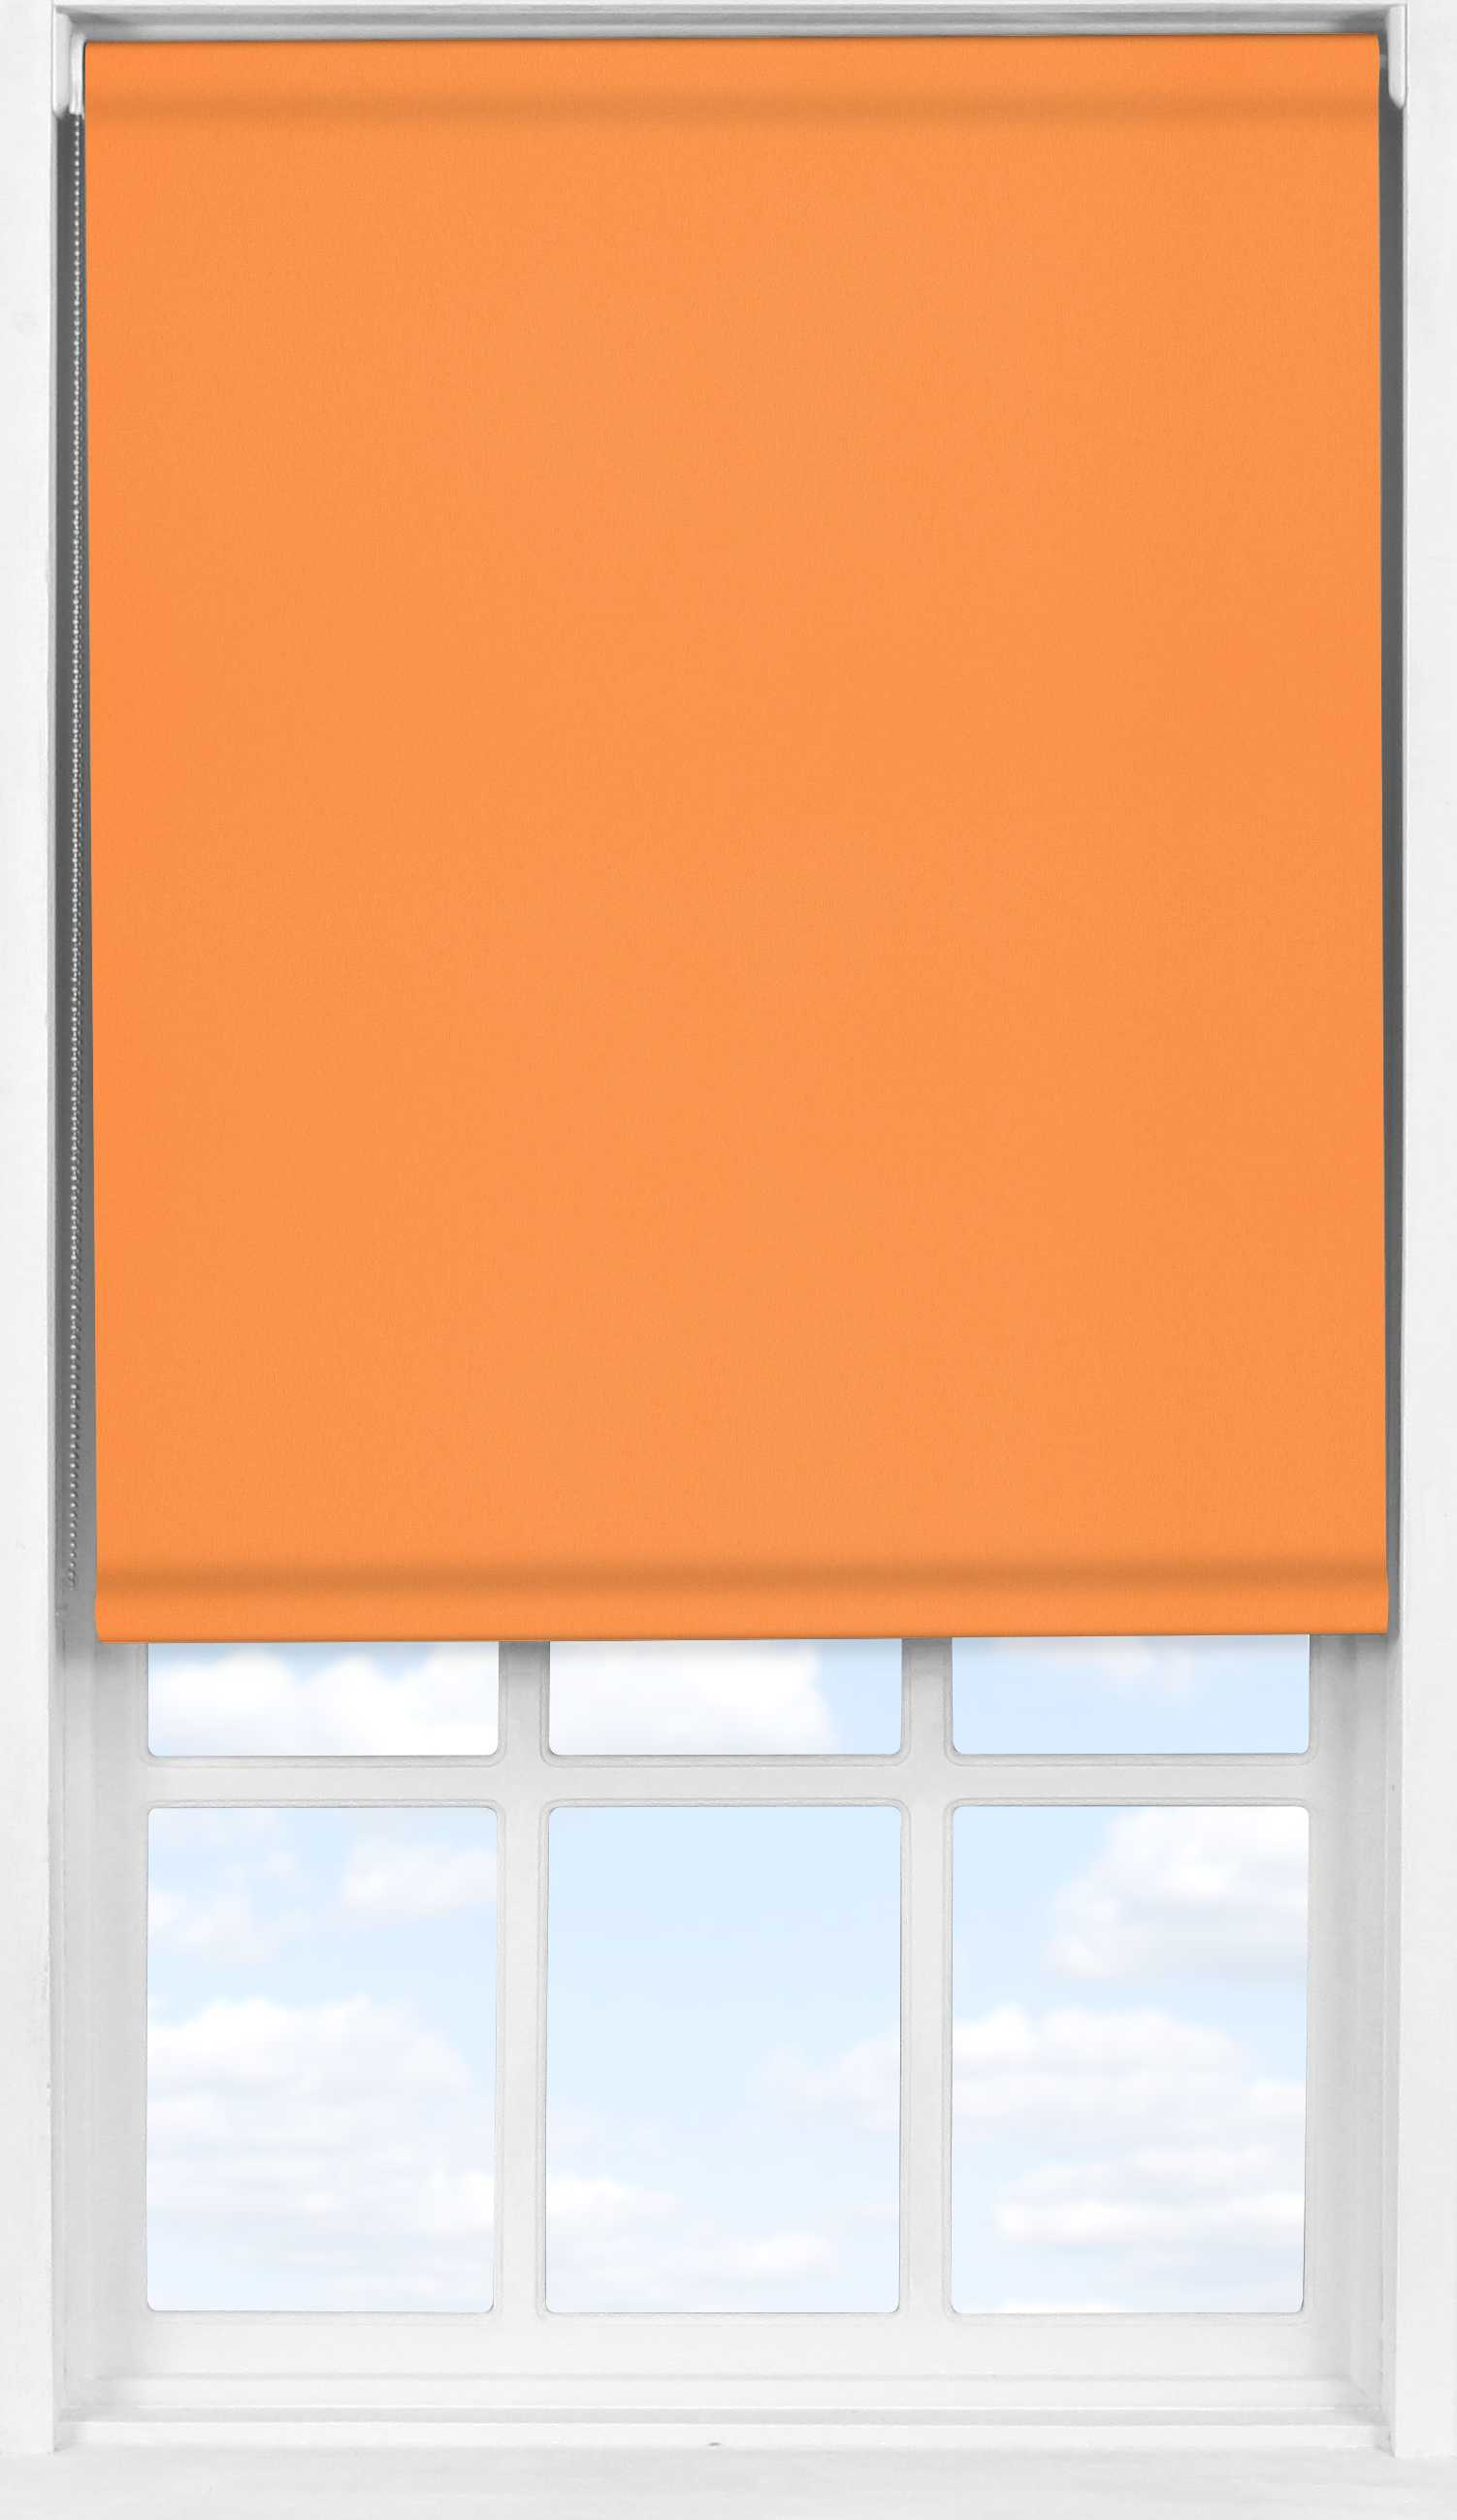 Easifit Roller Blind in Amber Sunset Translucent